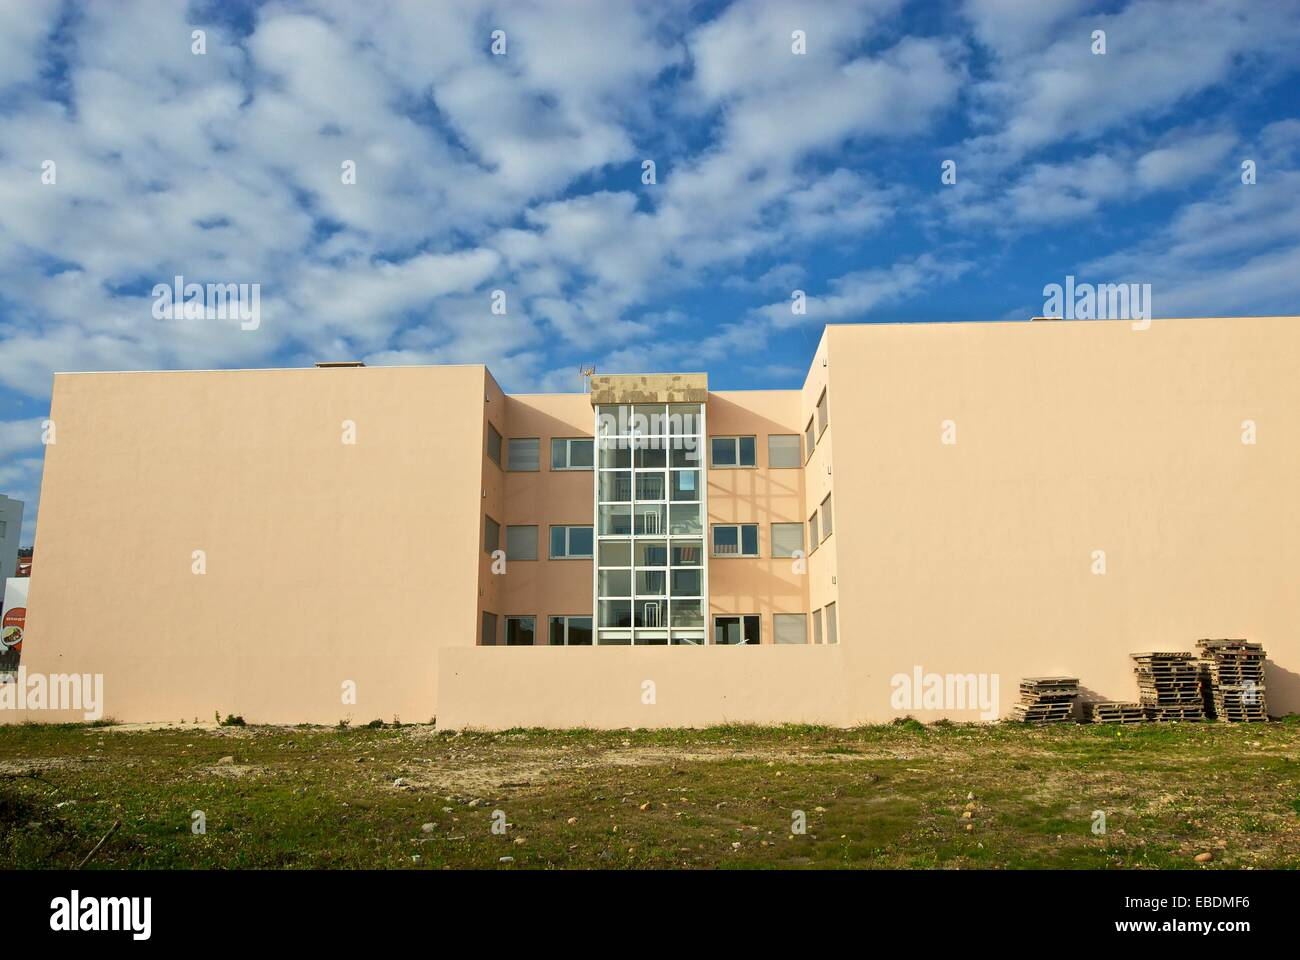 House in Vila Praia de Ancora, Portugal - Stock Image